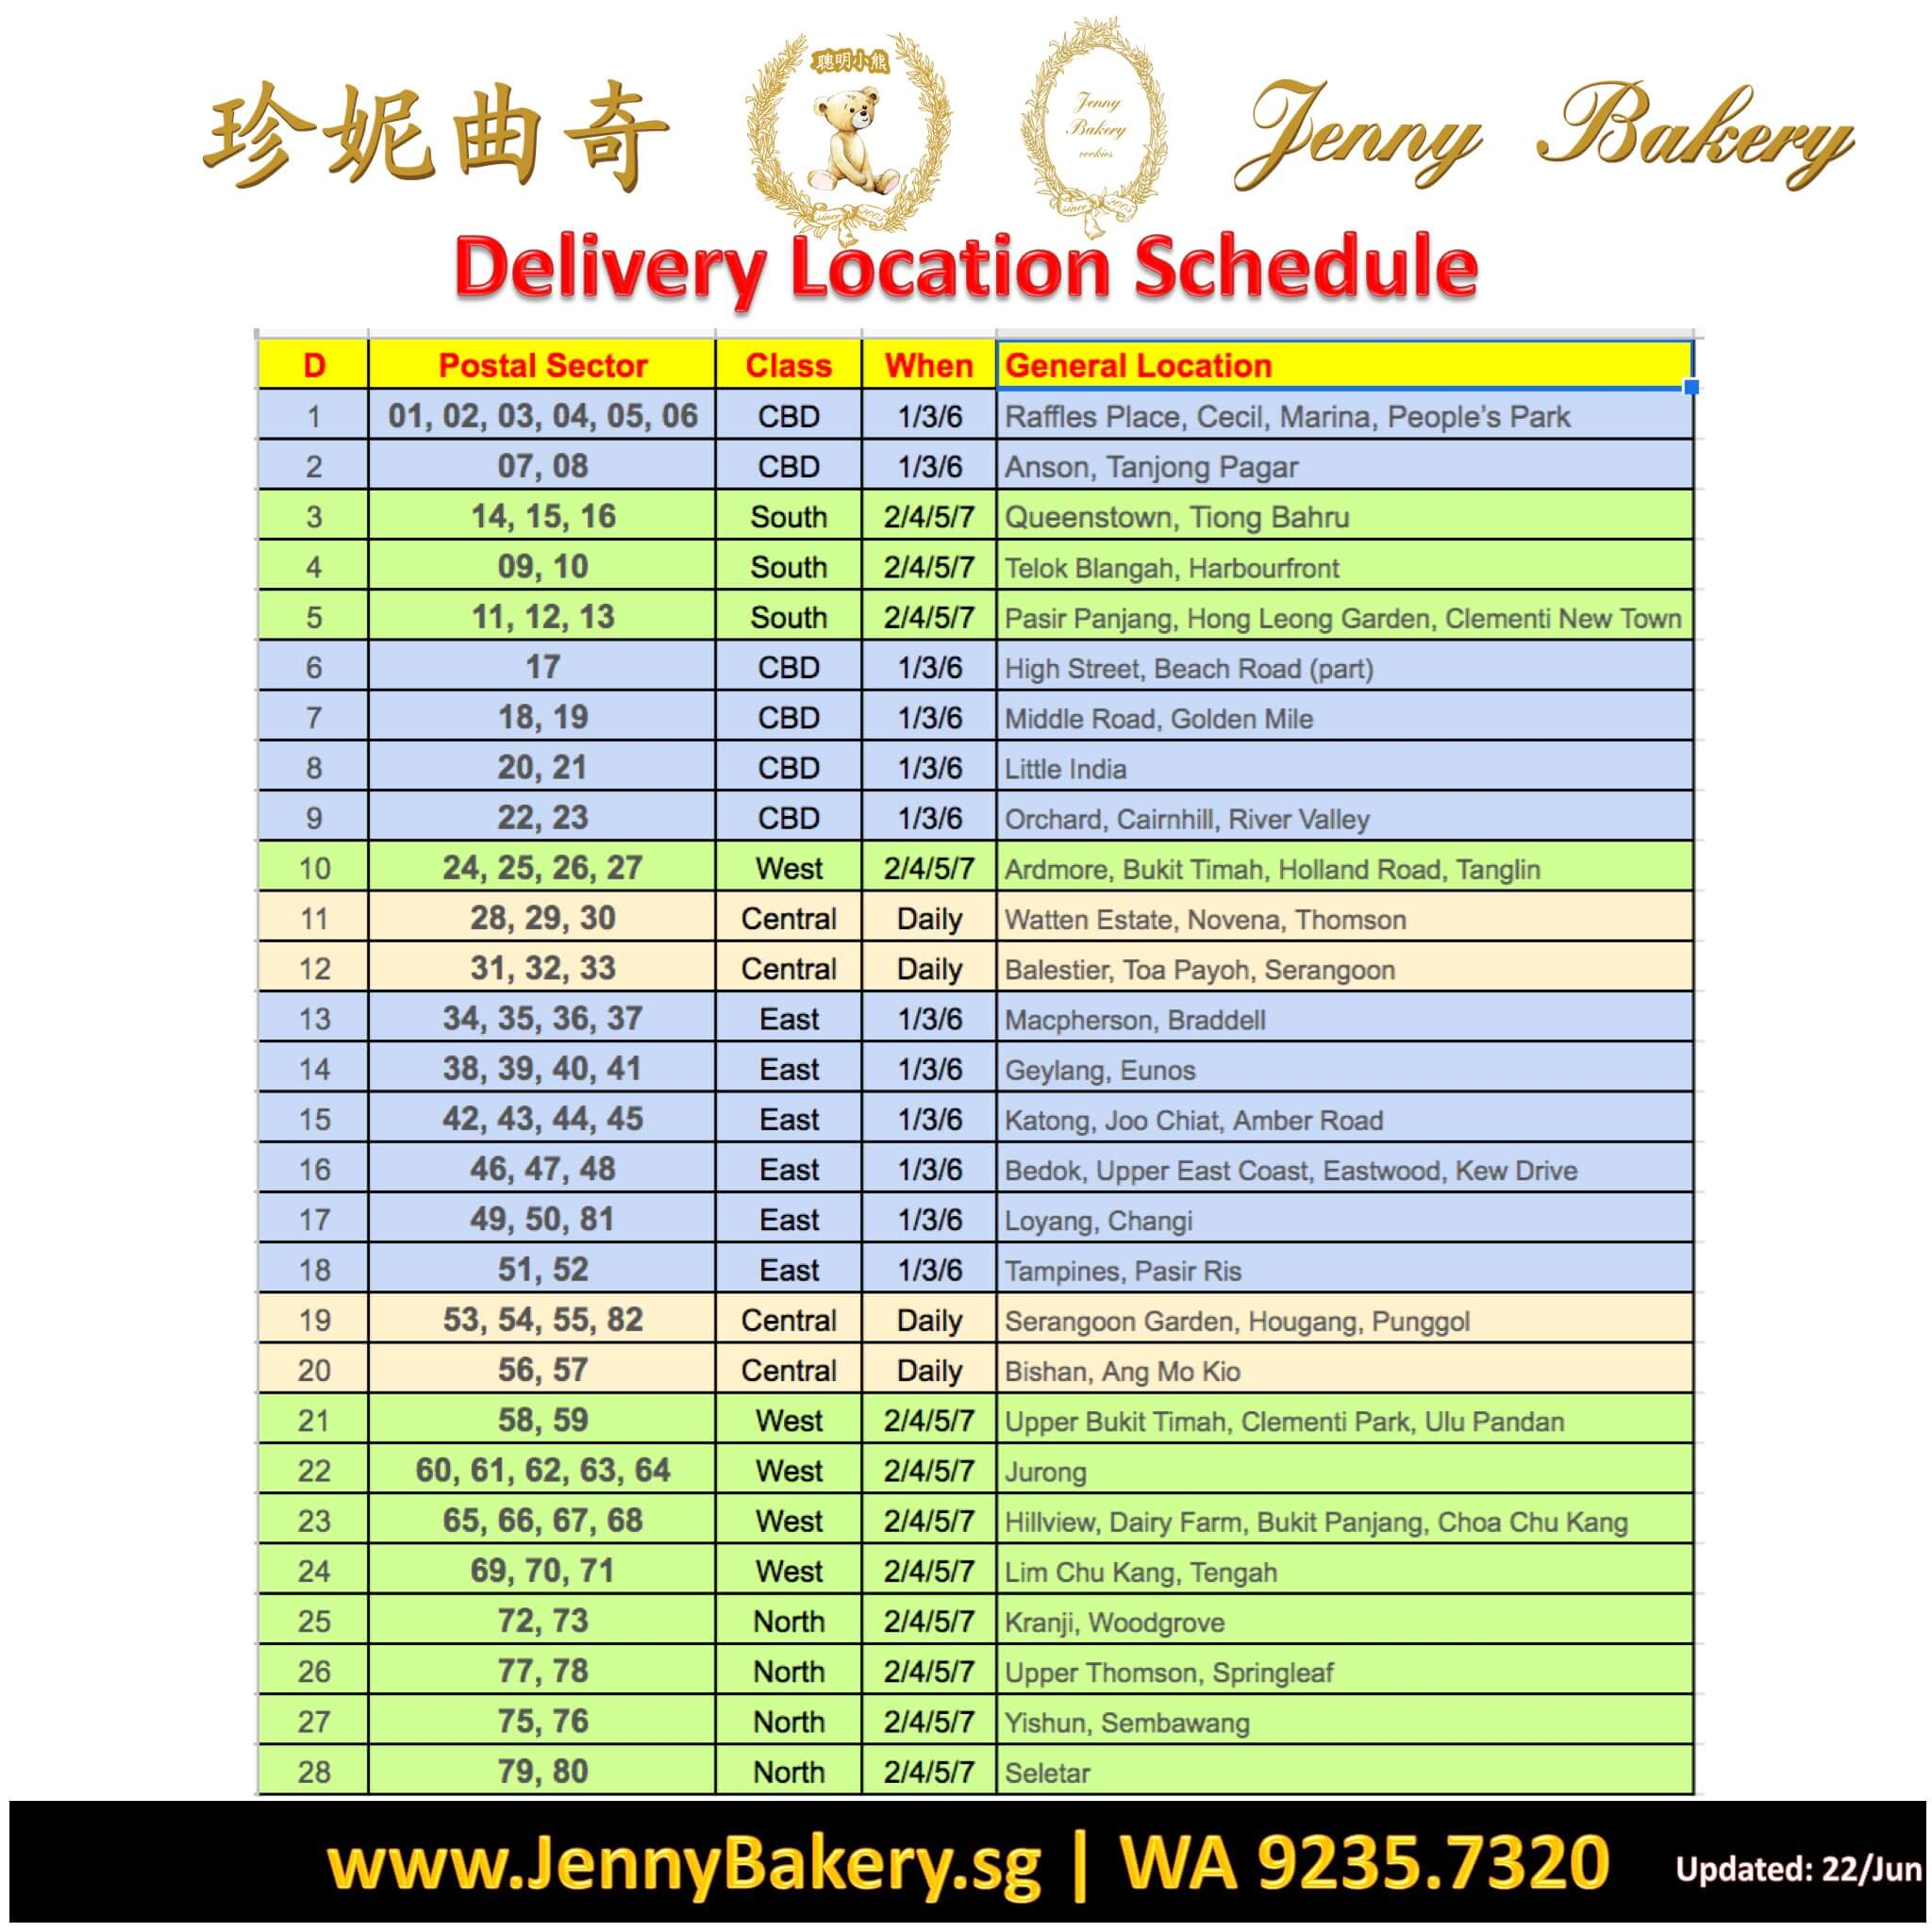 Jenny Bakery Delivery Schedule